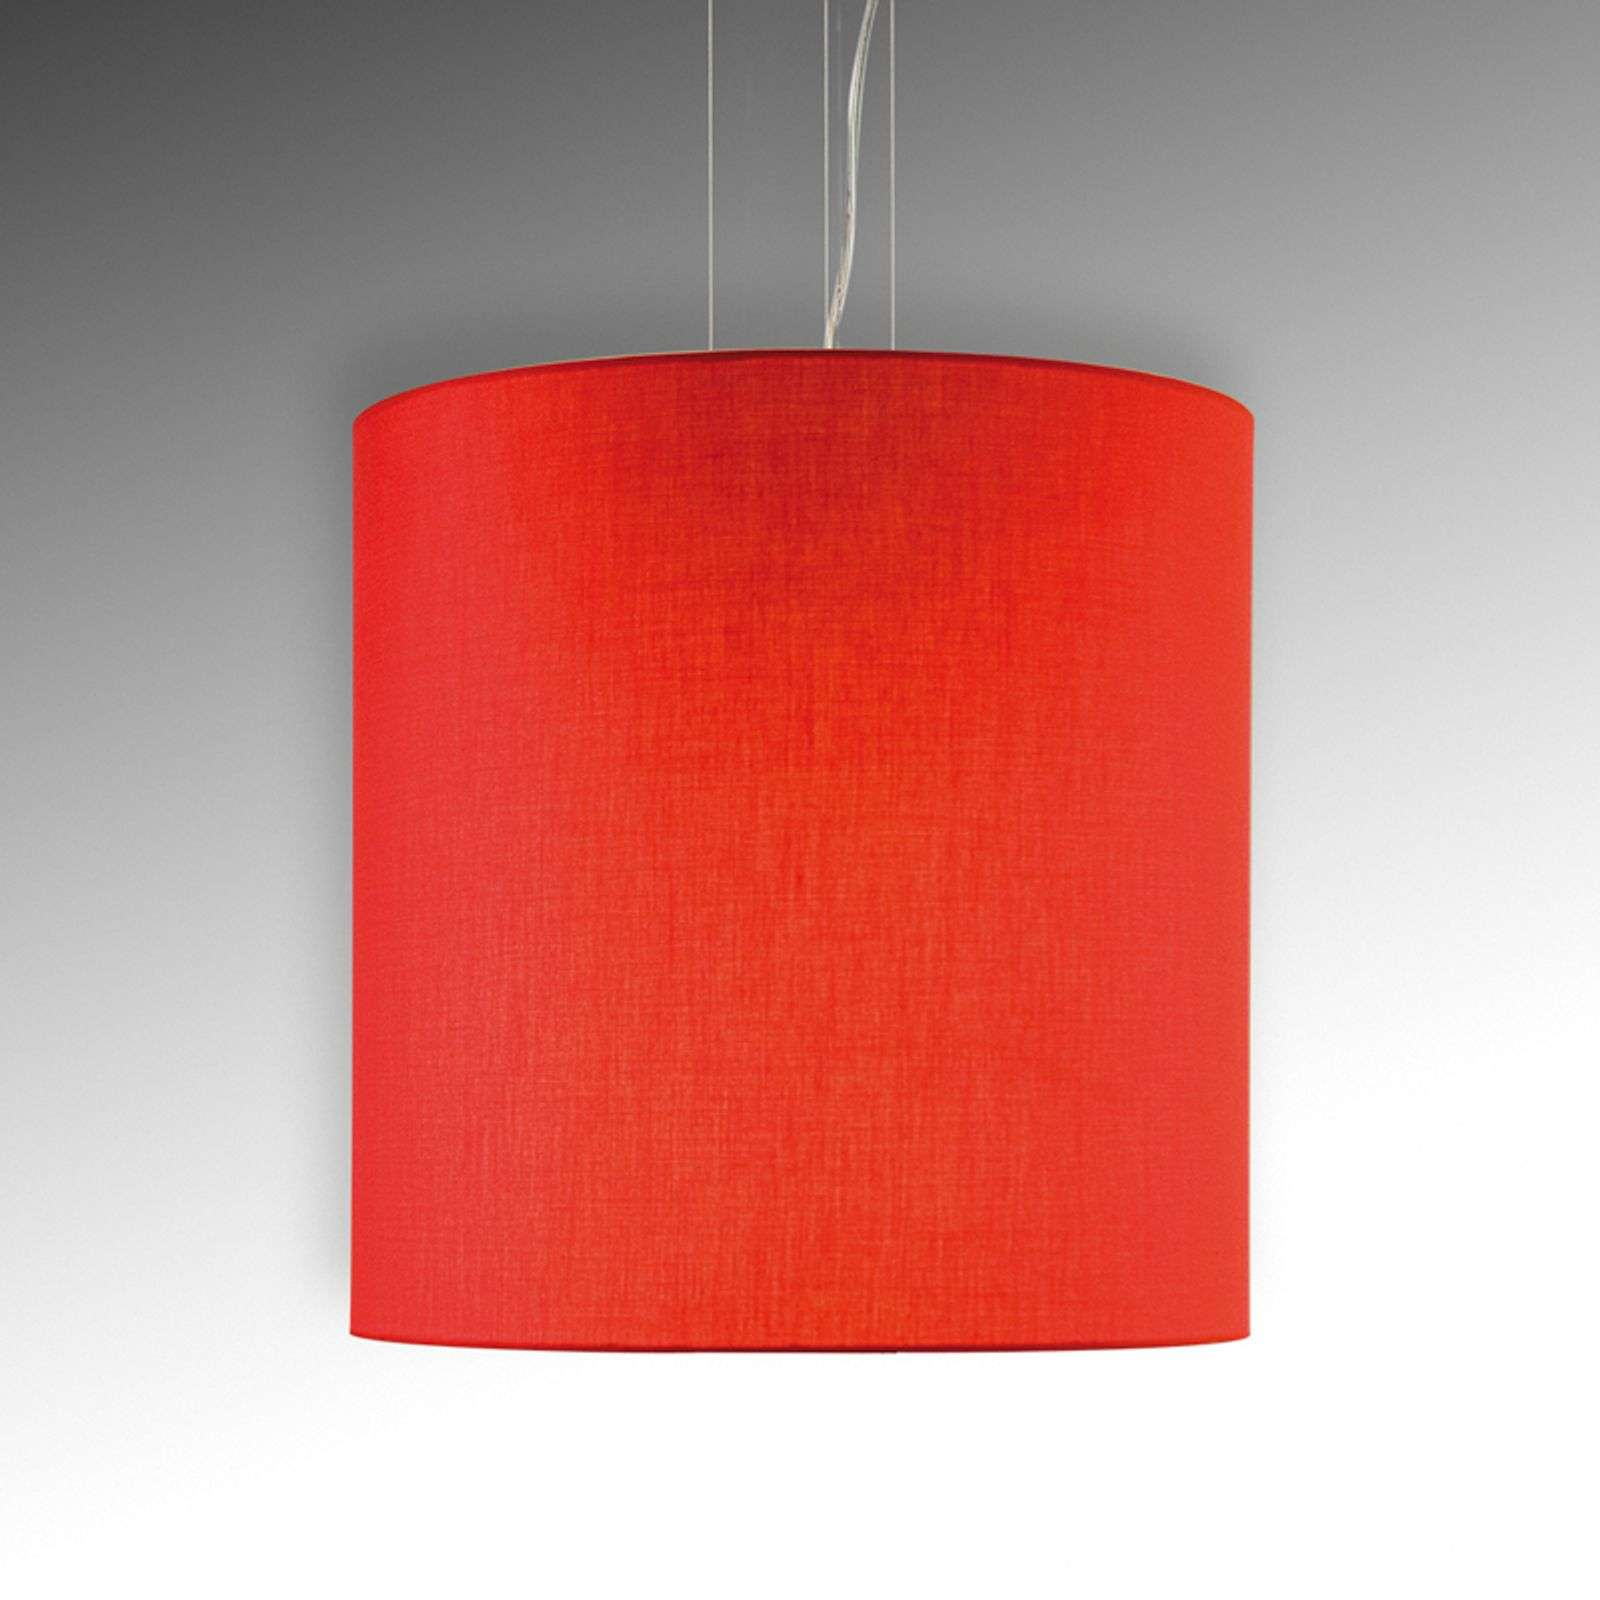 Suspension agréable Tono rouge diamètre 45 cm